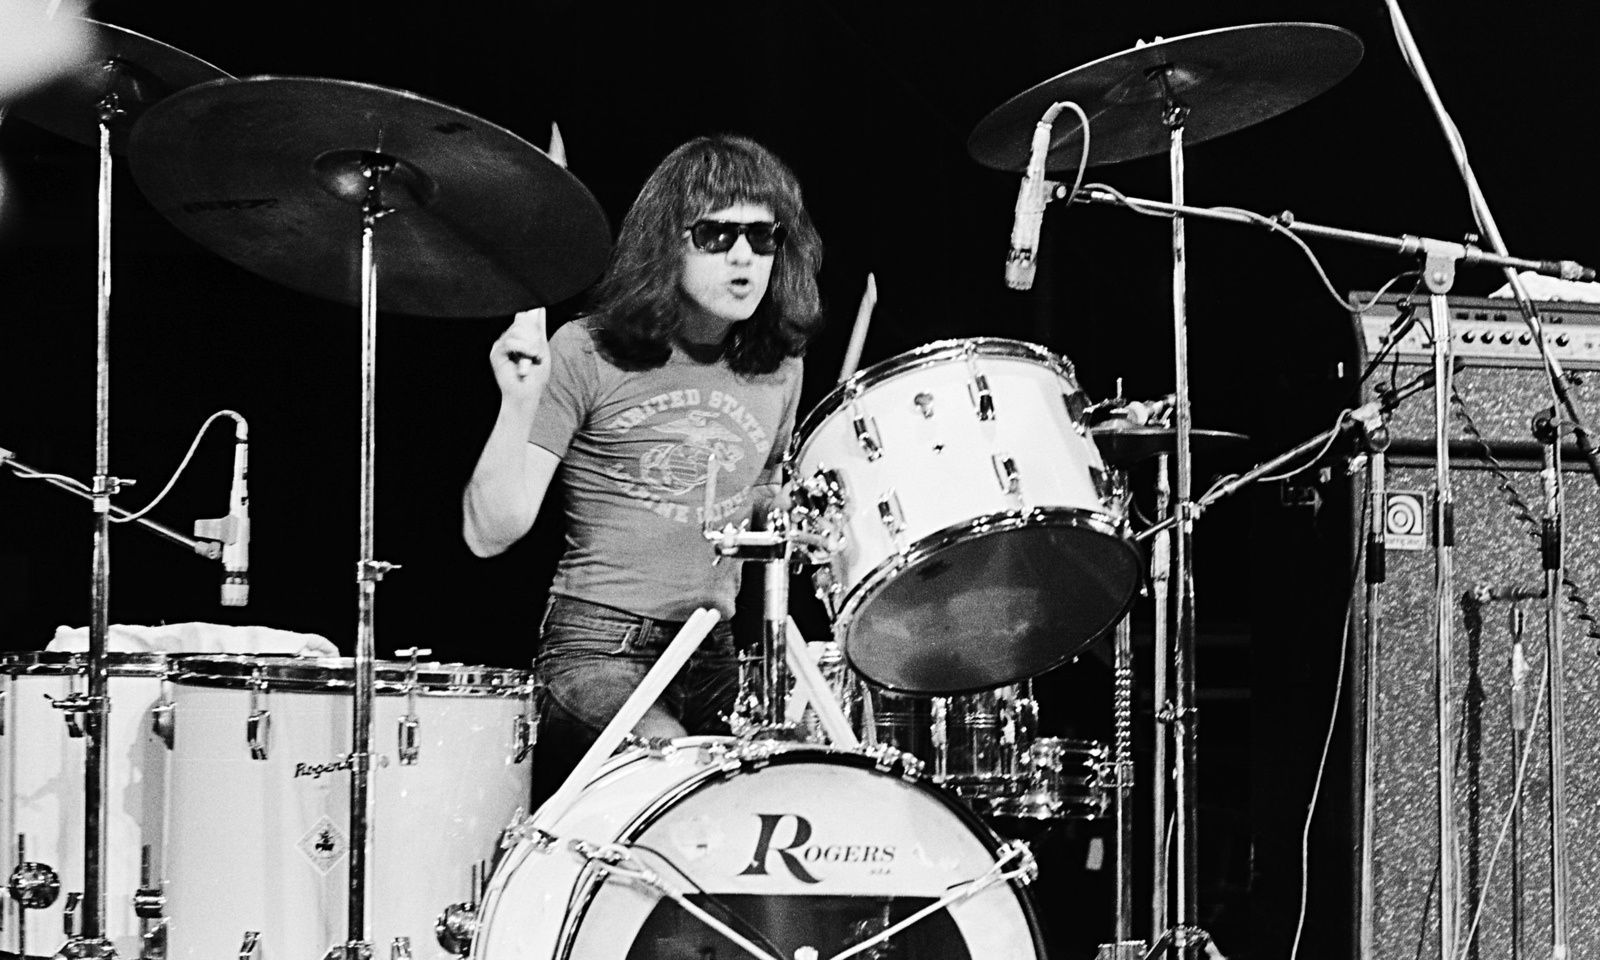 Tommy Ramone performs on stage with The Ramones at The Roundhouse in London, July 4th, 1976 - credit: Gus Stewart/Redferns